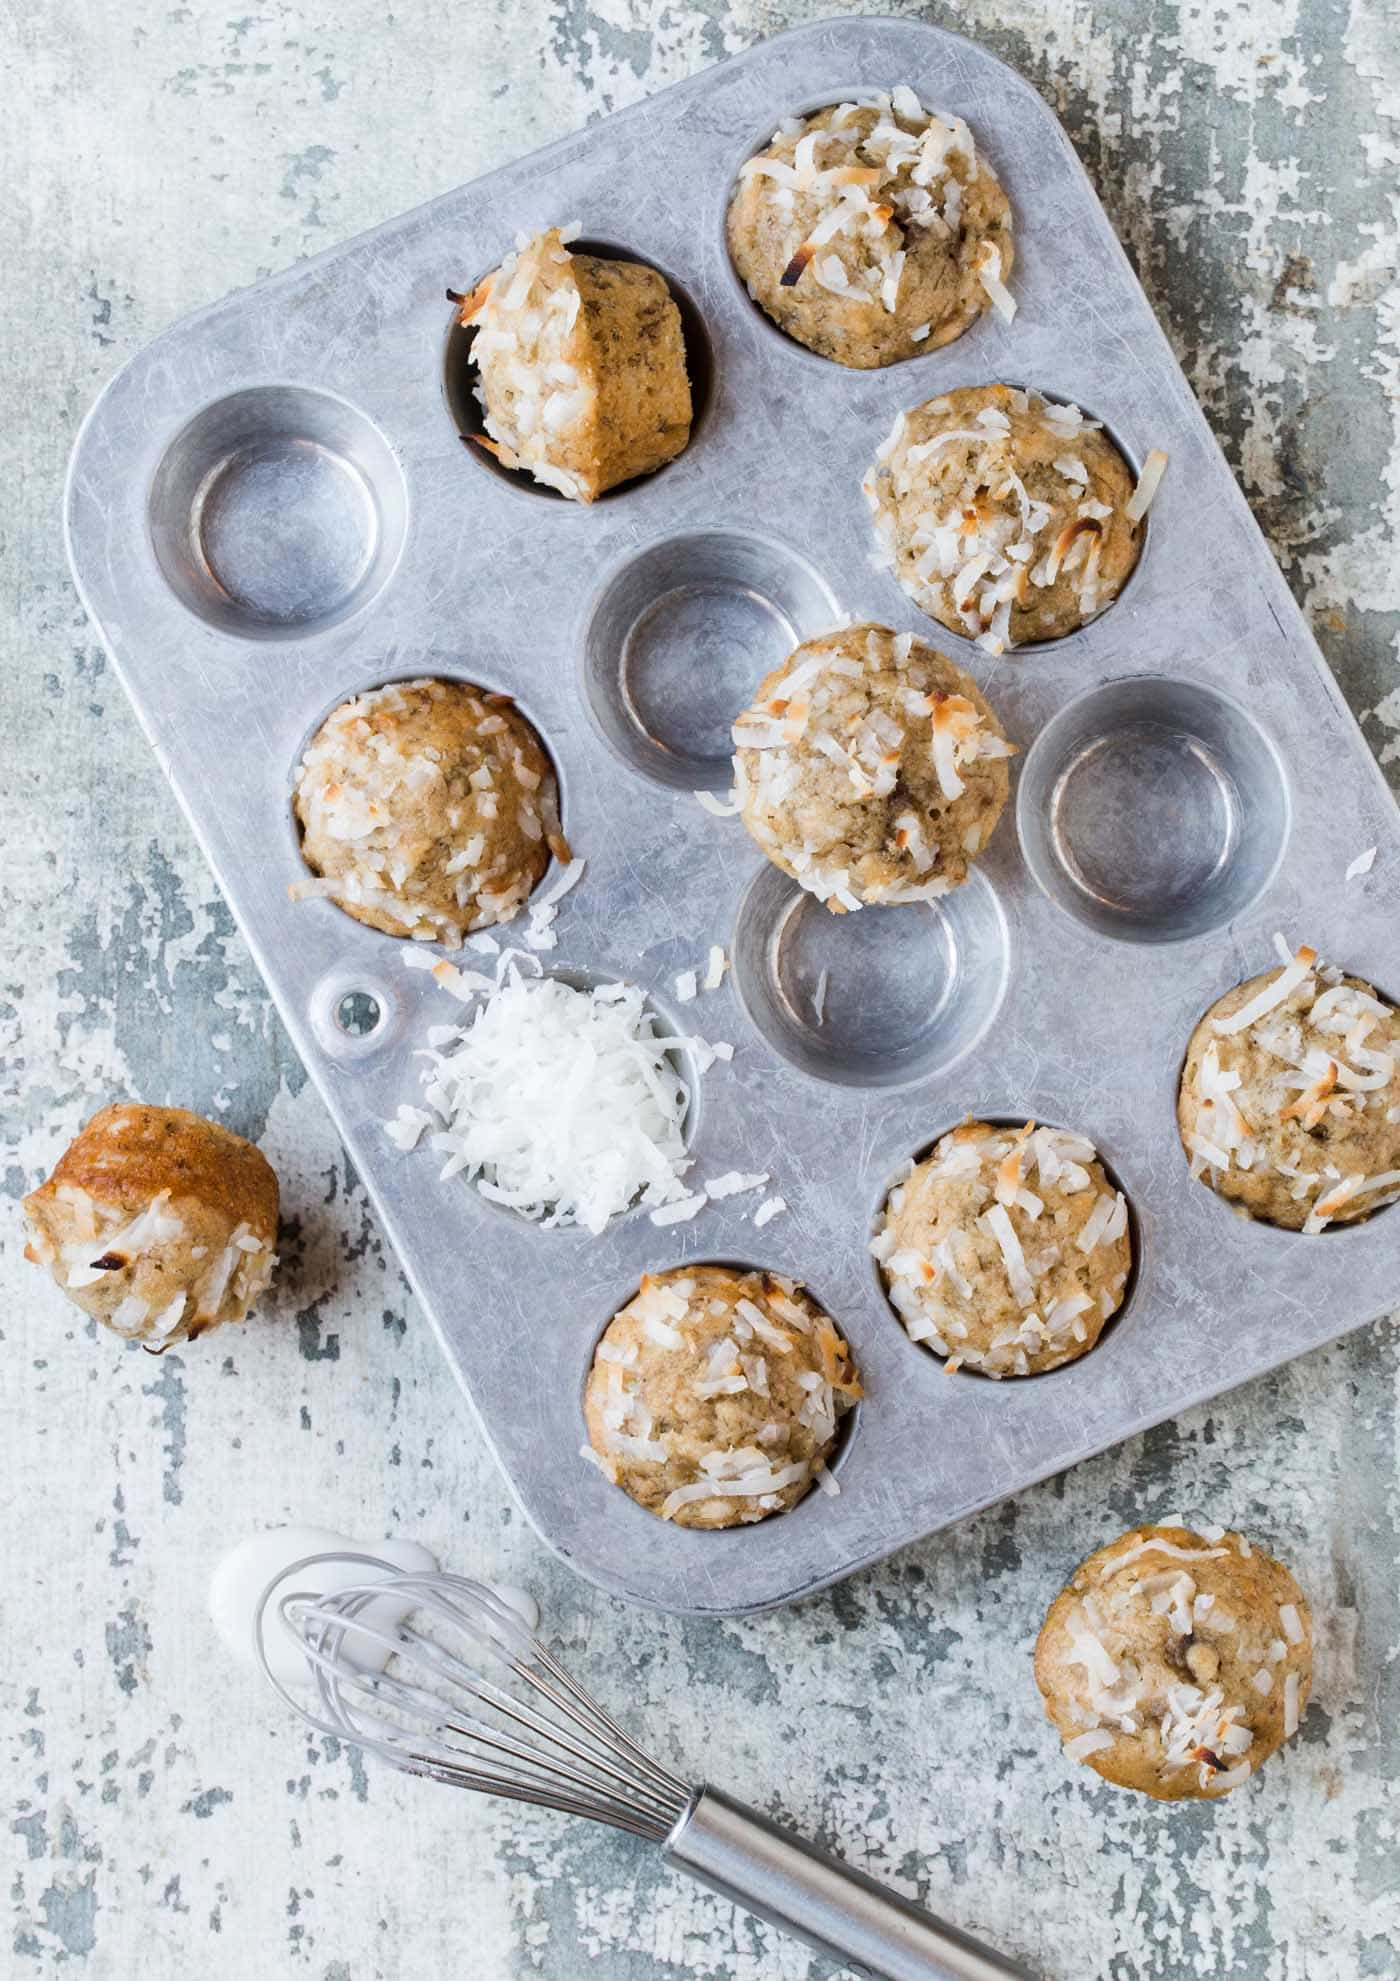 Mini muffin pan filled with Coconut Banana Bread Mini Muffins with Lime Glaze. Garnished with fresh shredded coconut